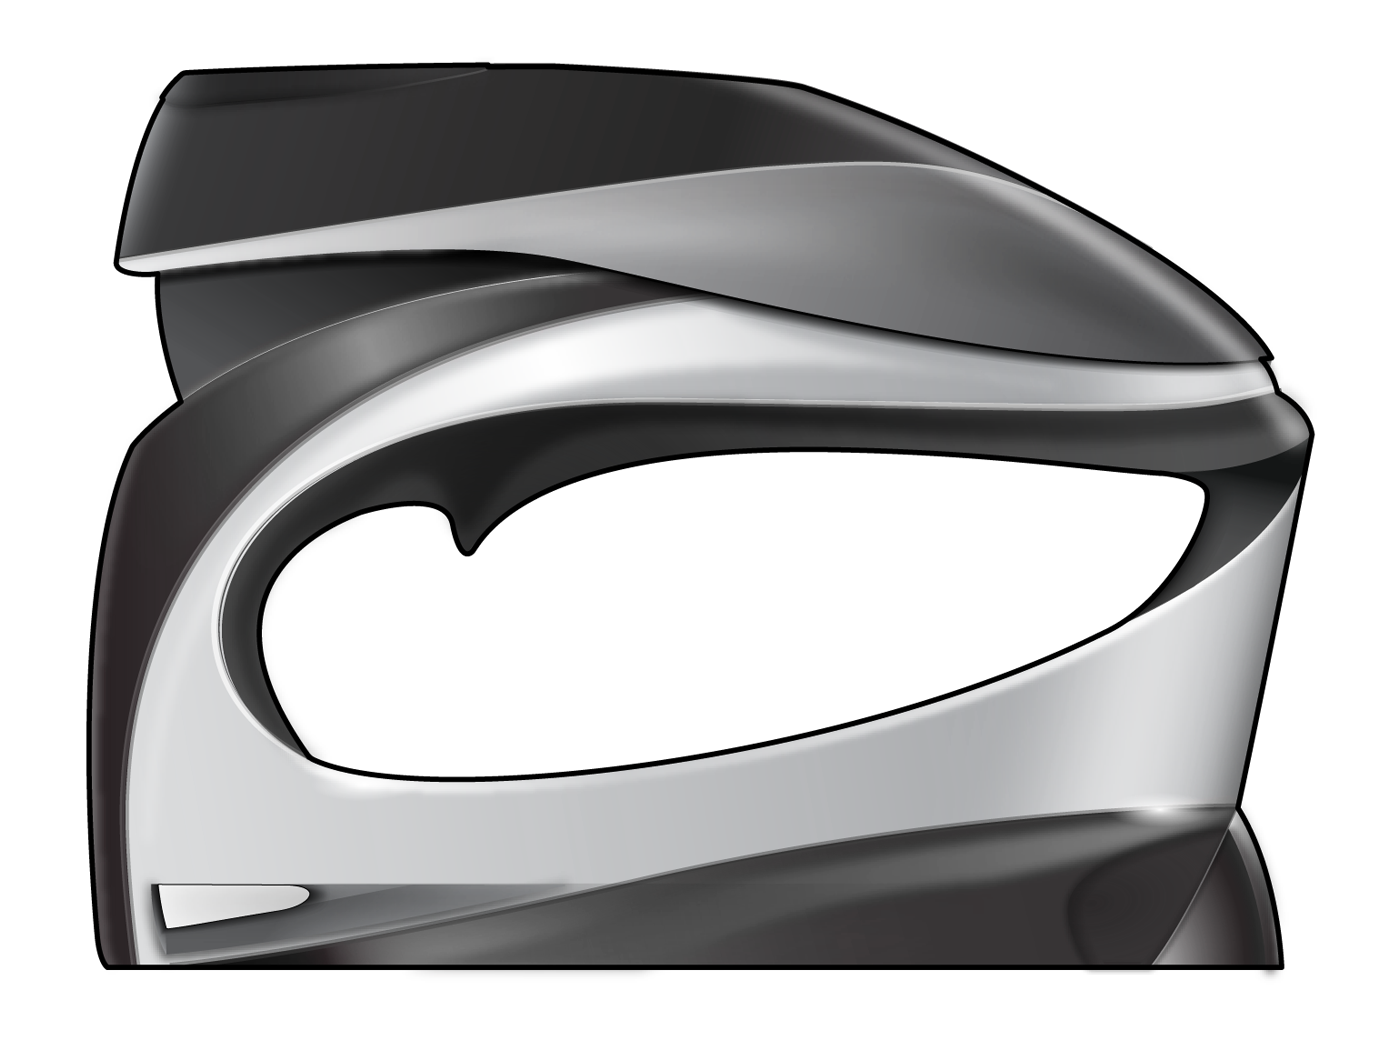 LB_forward-action-stapler_concept-2 small.png